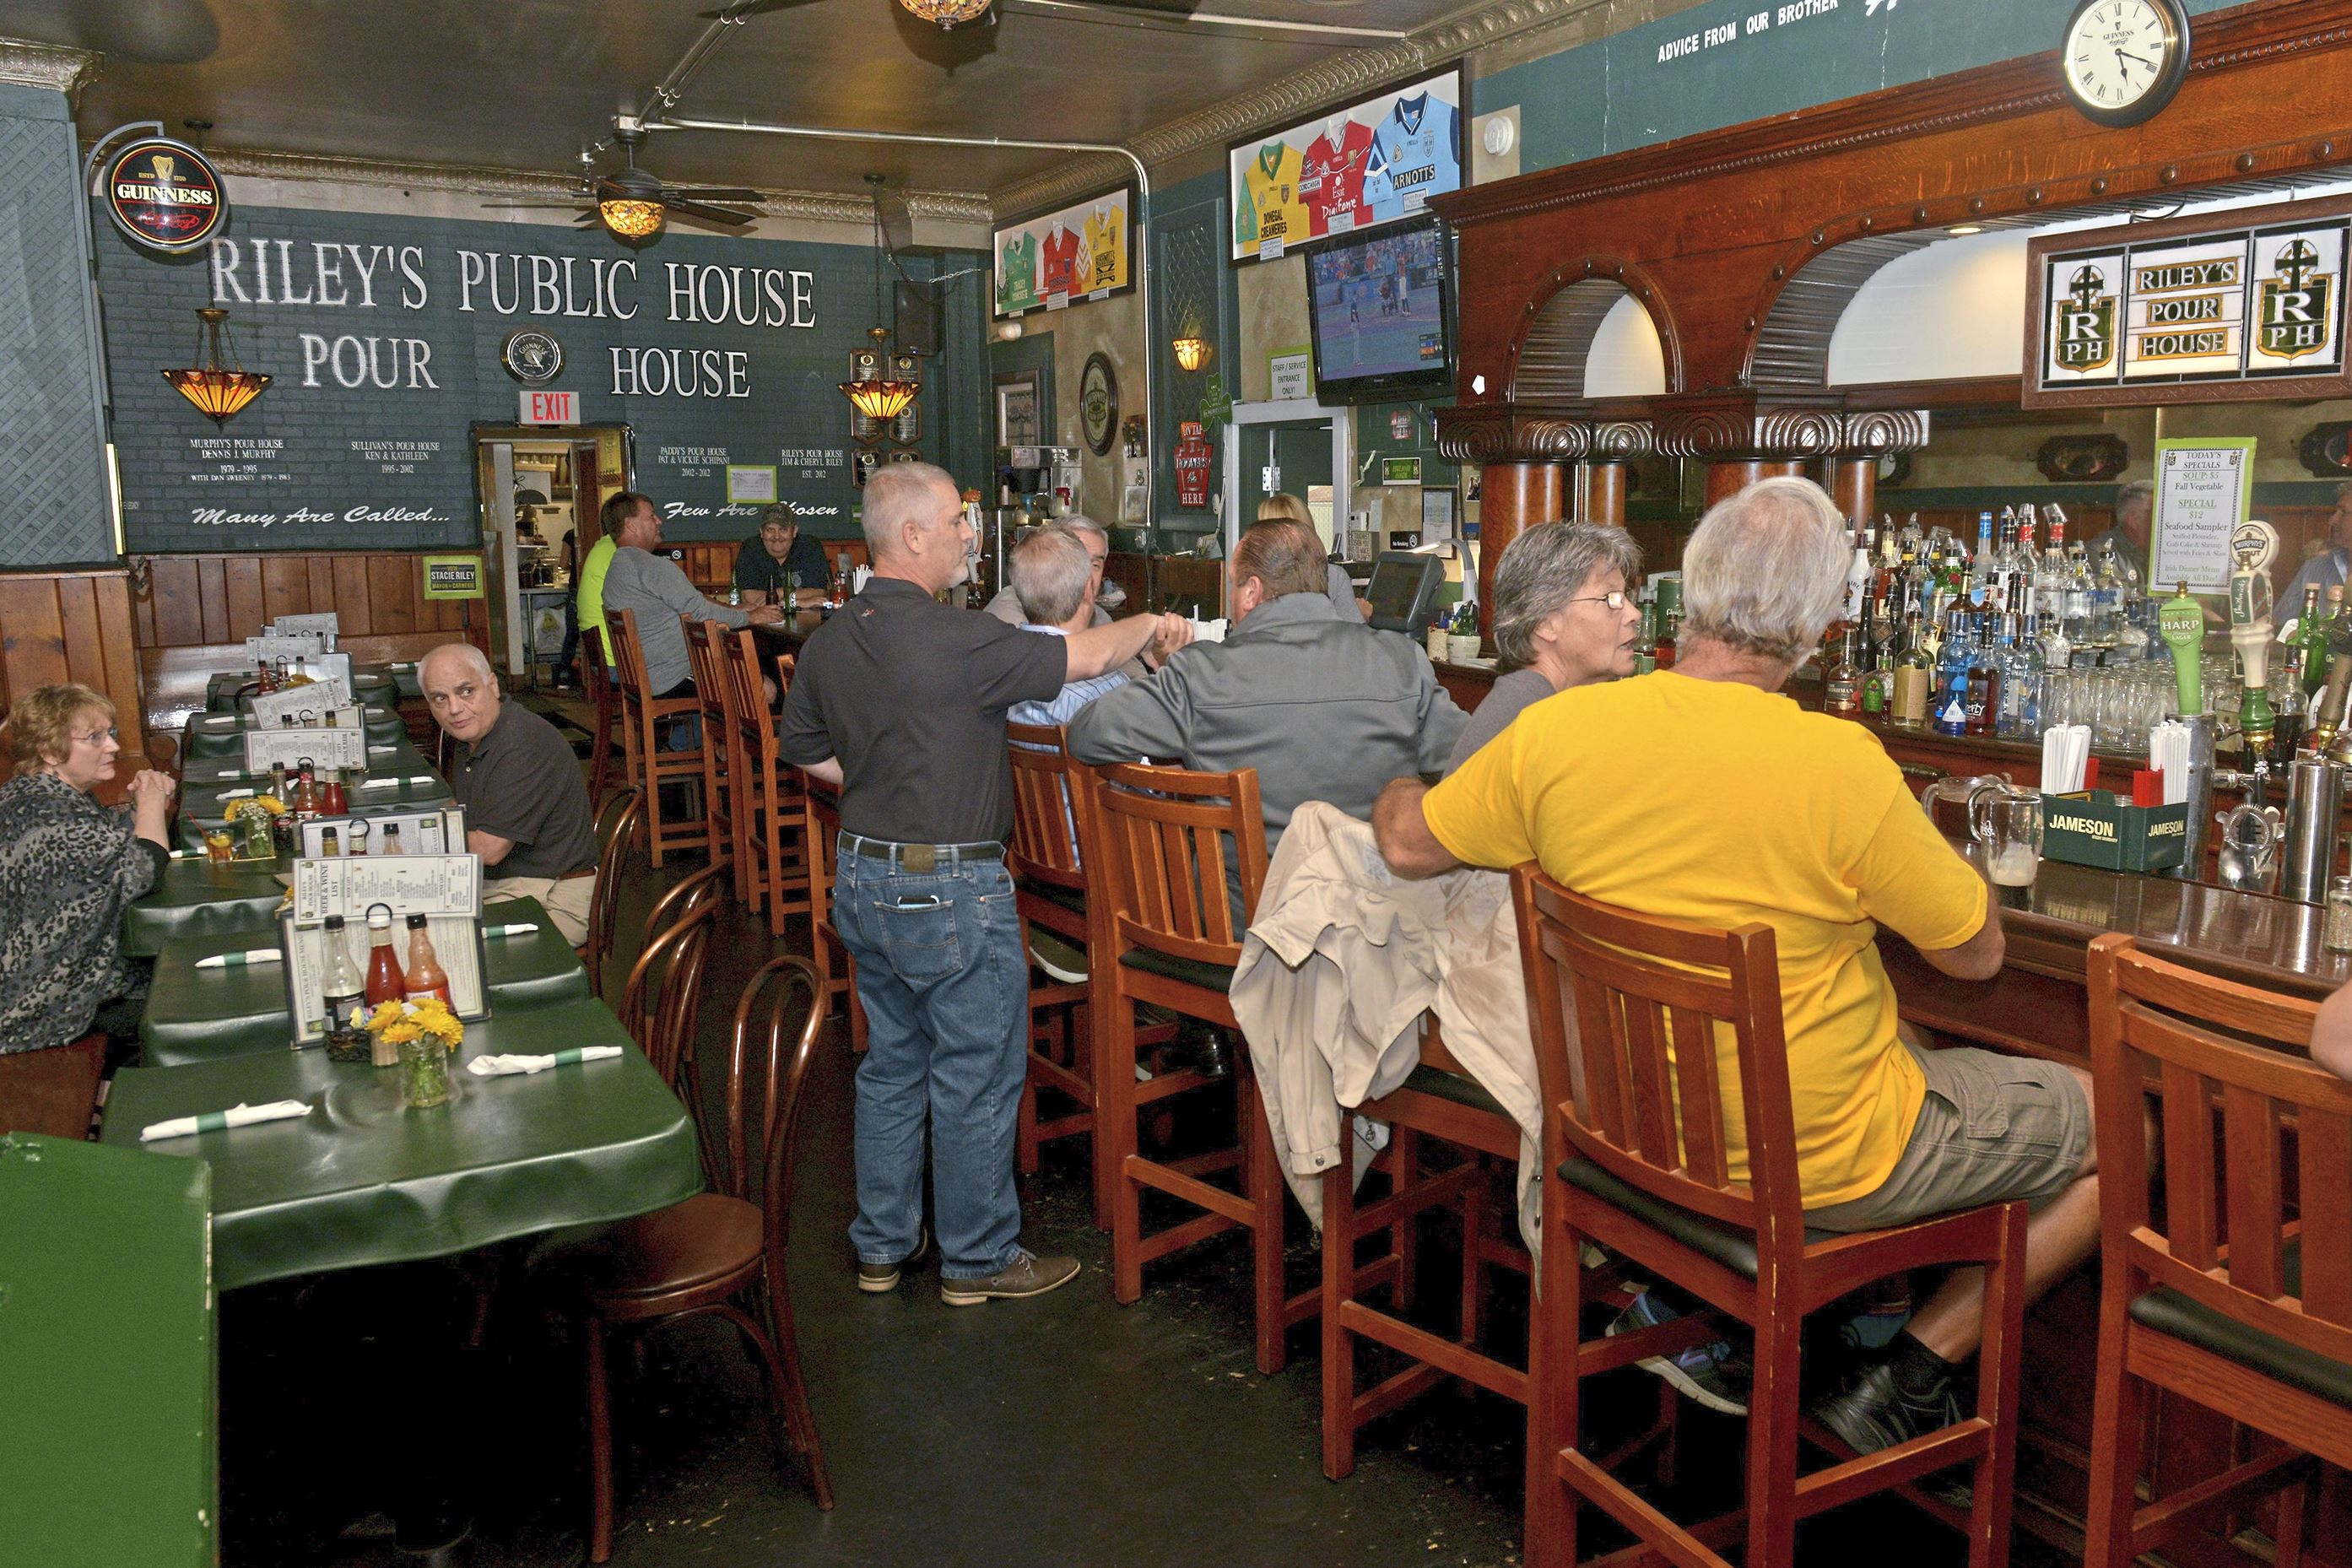 20171006ppRileys1DISTINCTION Patrons at Riley's Public Pour House enjoy happy hour at the Carnegie bar on an October Friday.